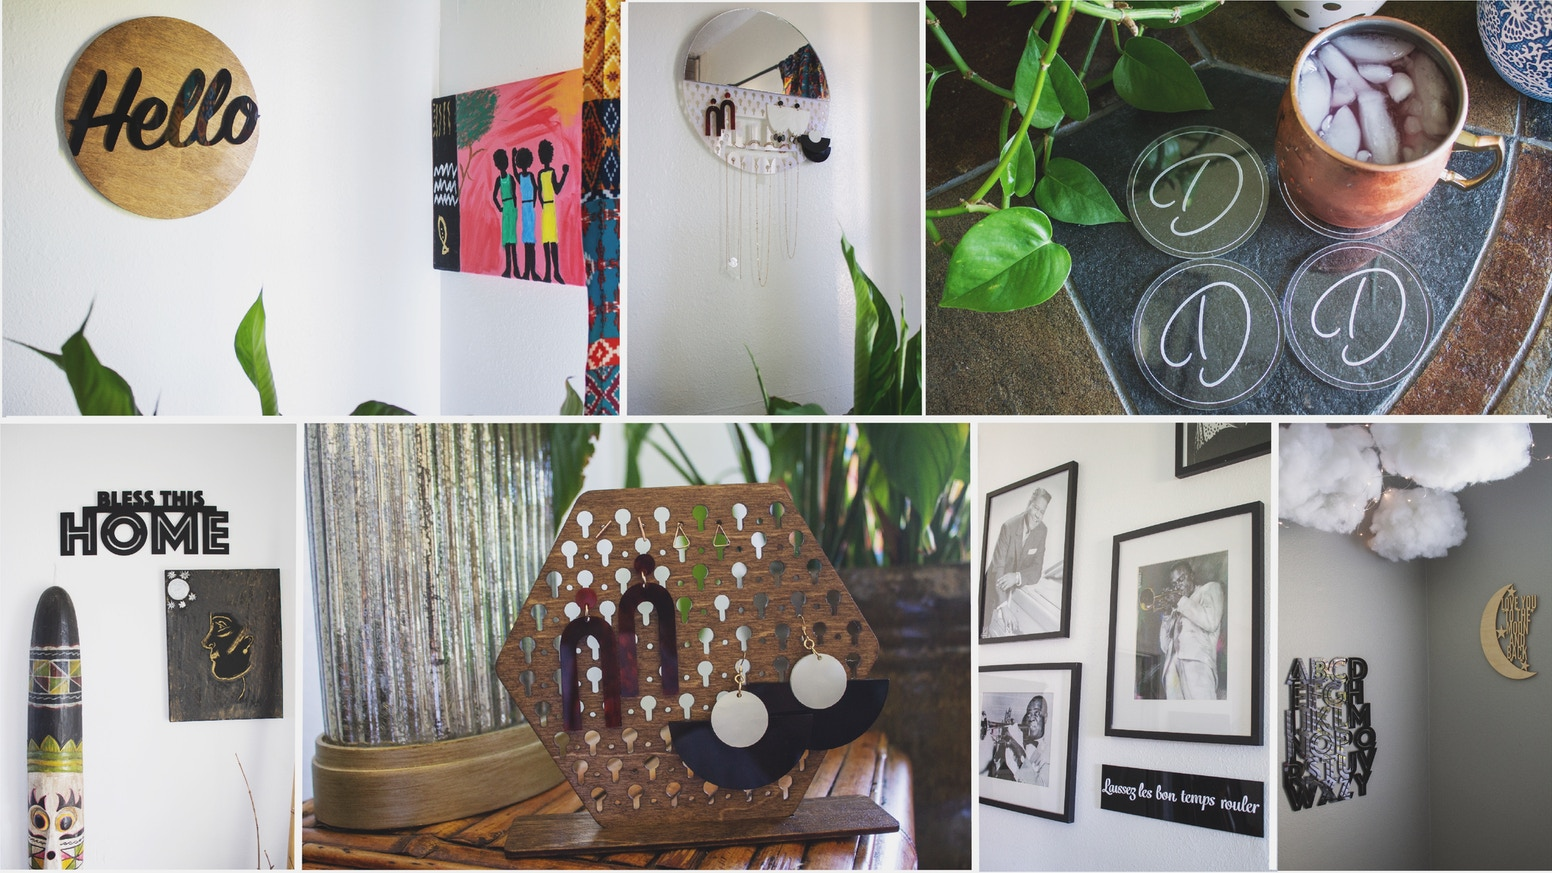 Laser cut and handmade decor and accessories